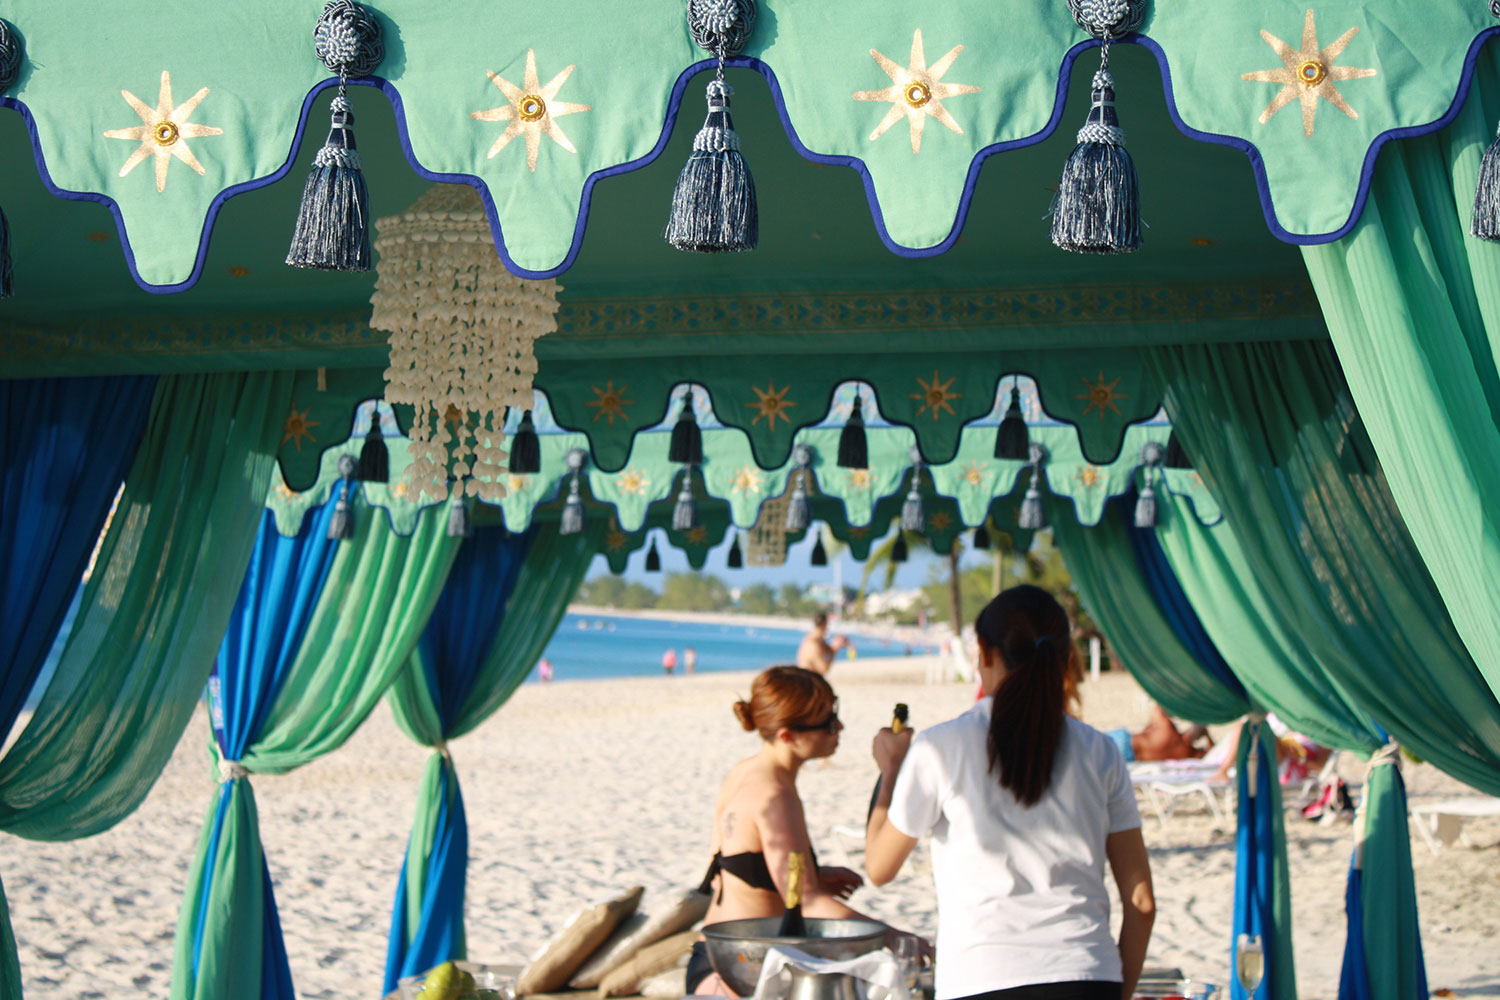 raj-tents-destination-events-beach-chic-party.jpg